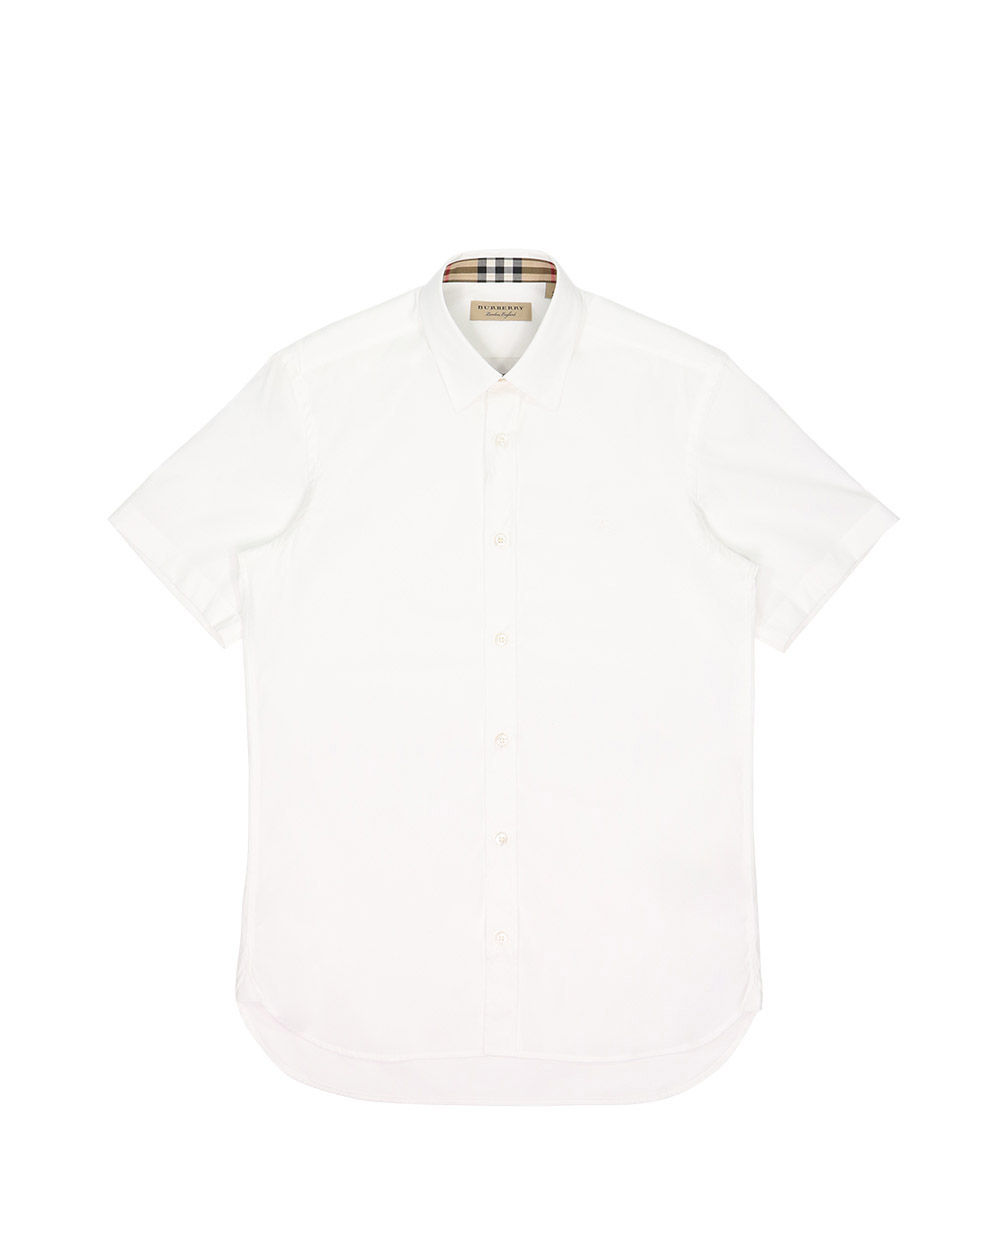 Burberry Shirt in White